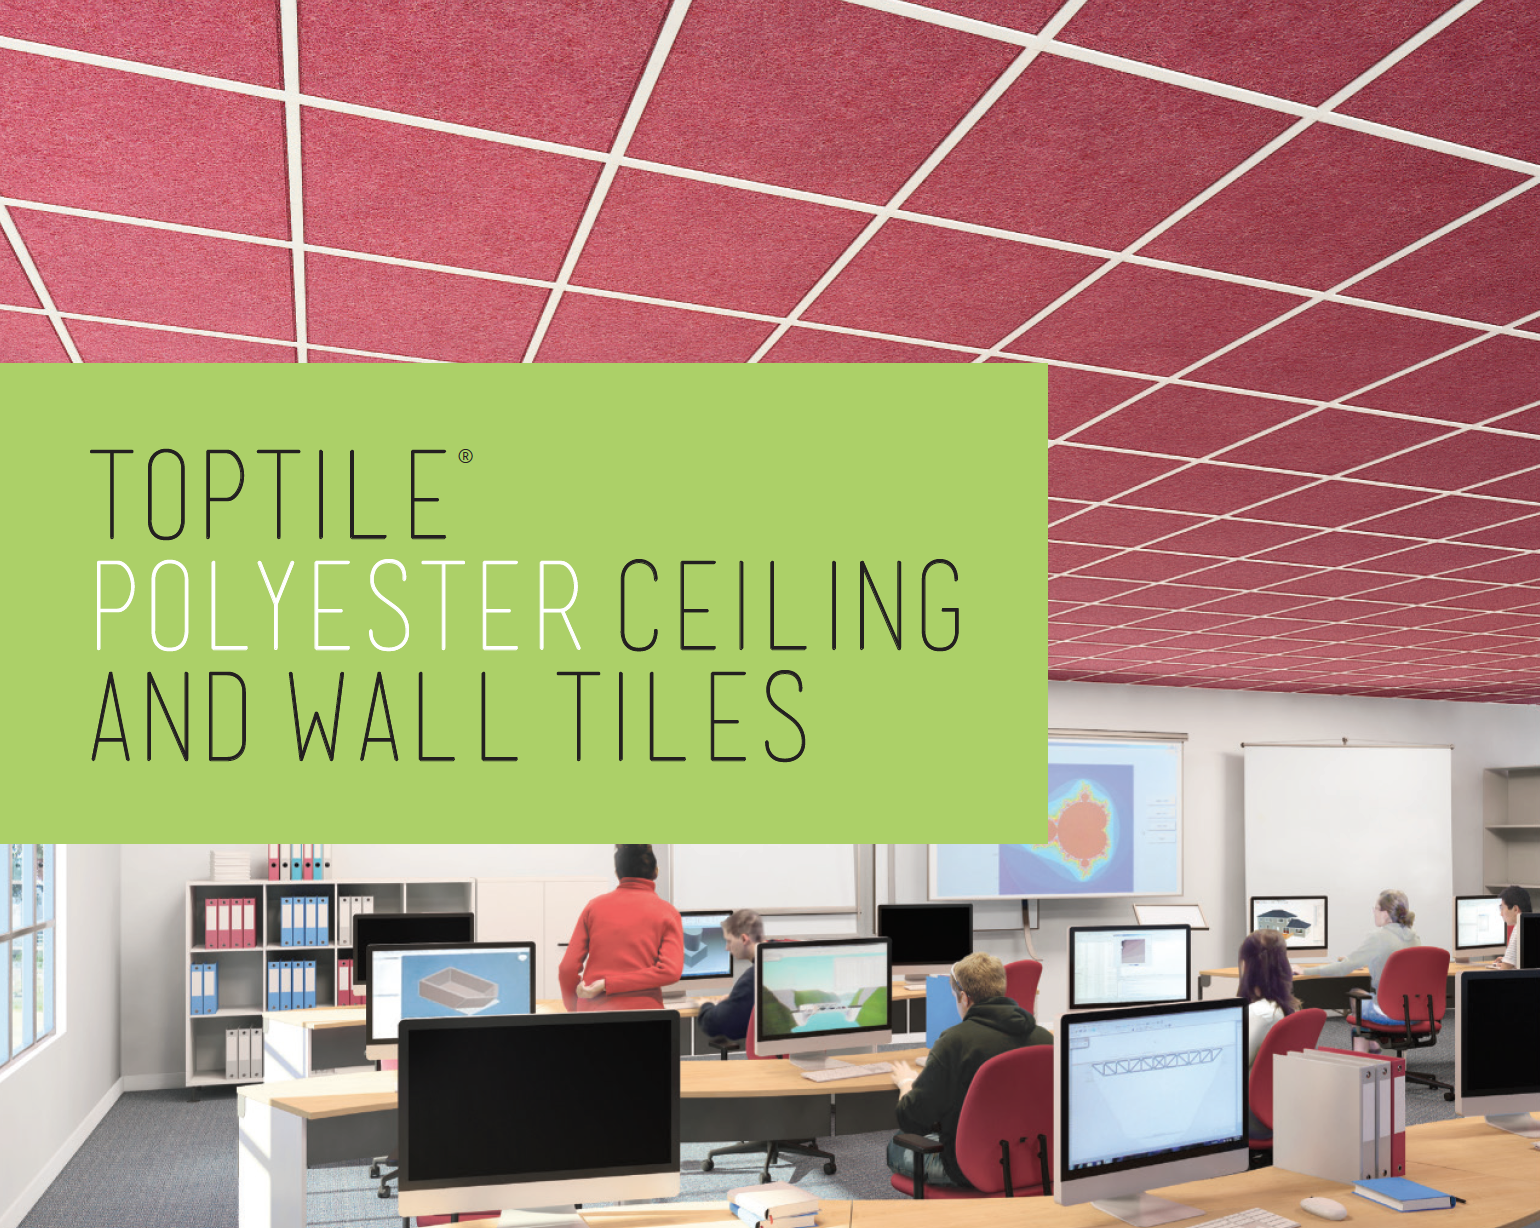 TopTile® Polyester Lay-in Ceiling Tiles (above).